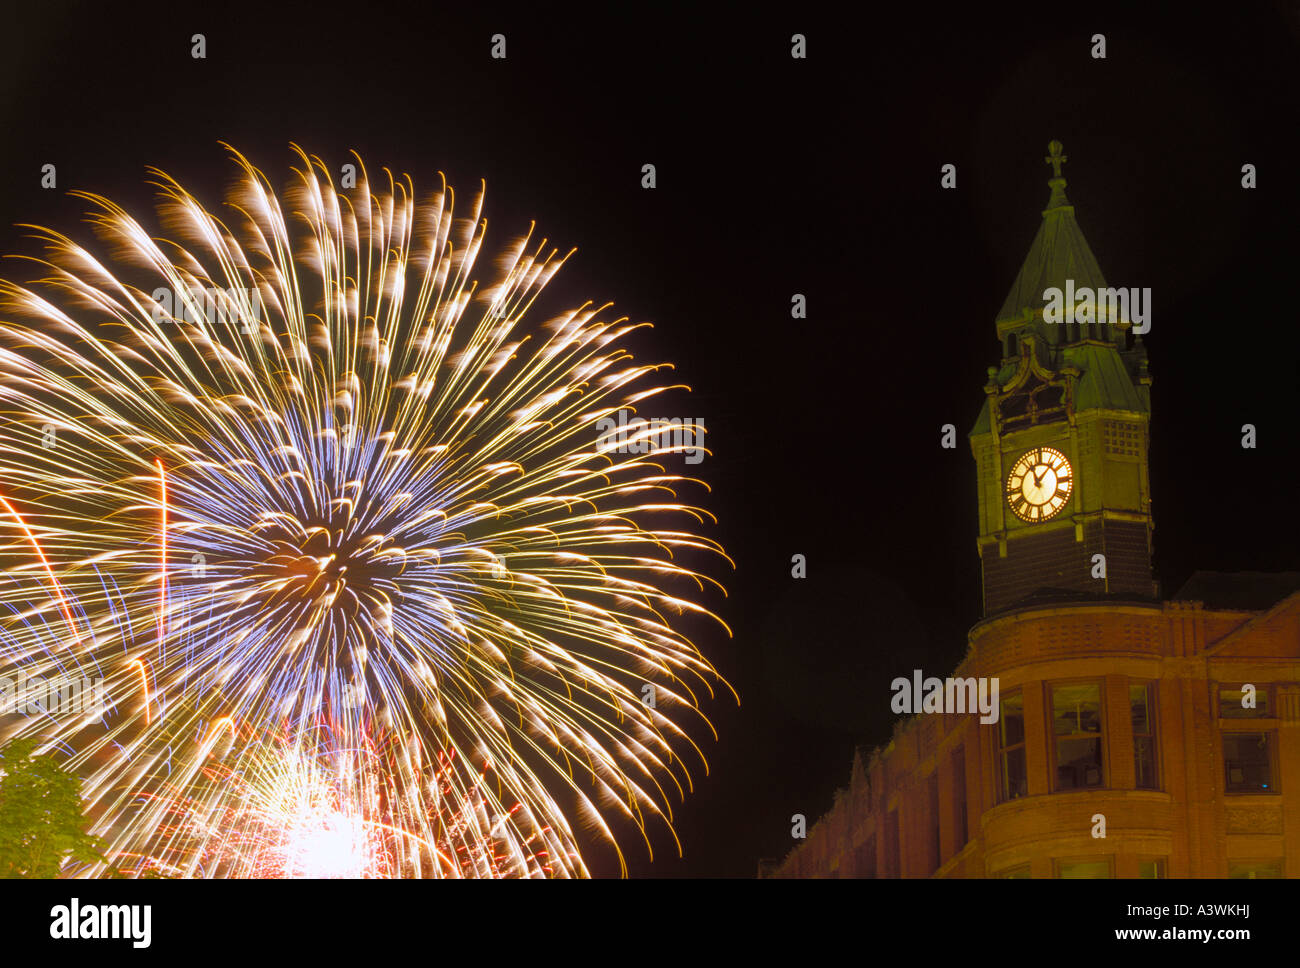 Fourth of July fireworks burst behind the historic Savings Bank buiding in downtown Marquette Mich - Stock Image